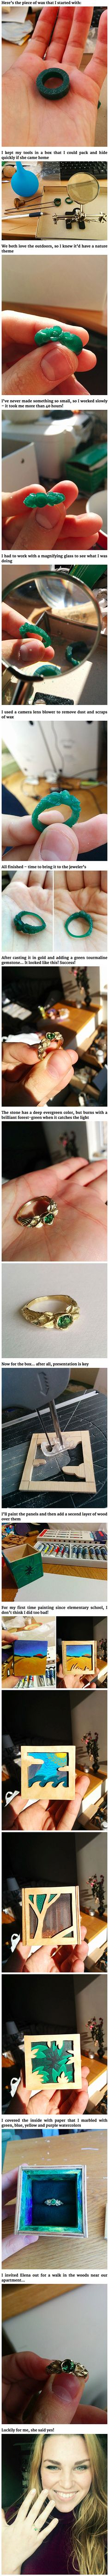 Because I like to sculpt wood and clay, I decided to, in one way or another, create a ring of my own design. Eventually, I found a jeweler who agreed to take anything I'd make out of wax and cast it in gold!<<aww #funnypics #funny #lol